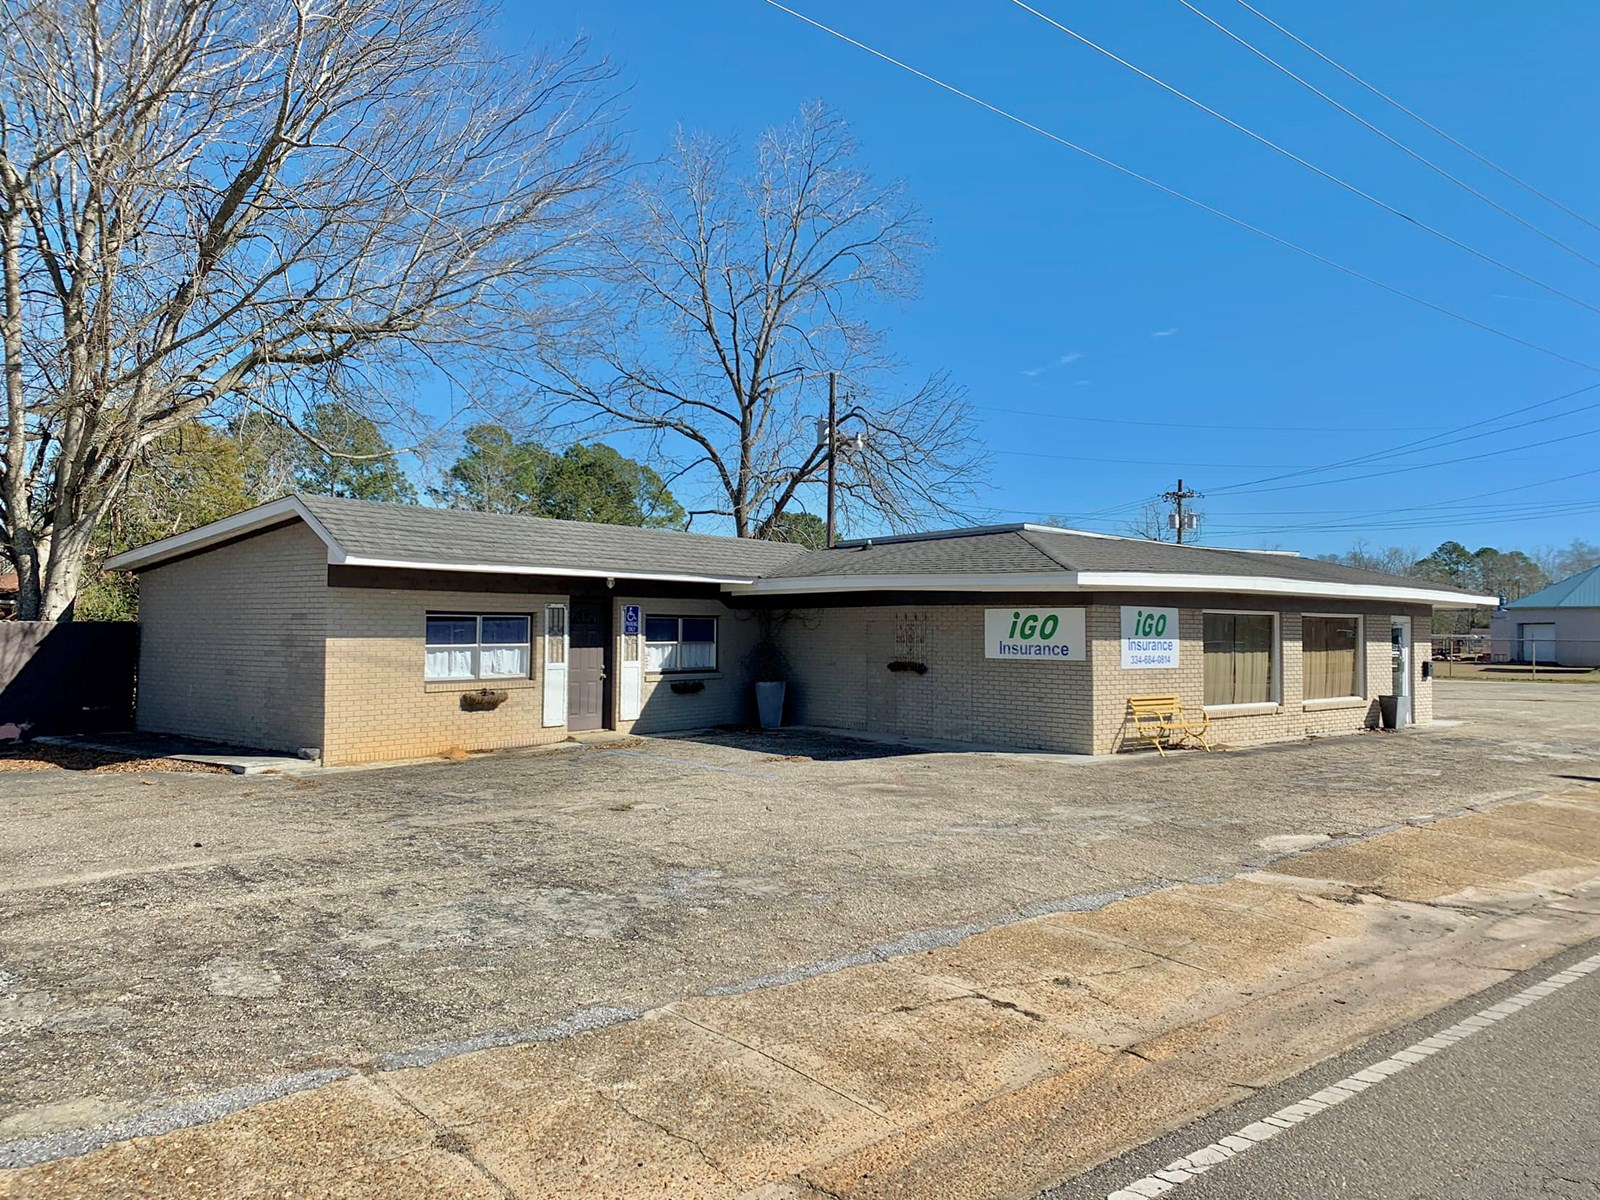 Commercial Property for Sale Geneva, AL - Investment